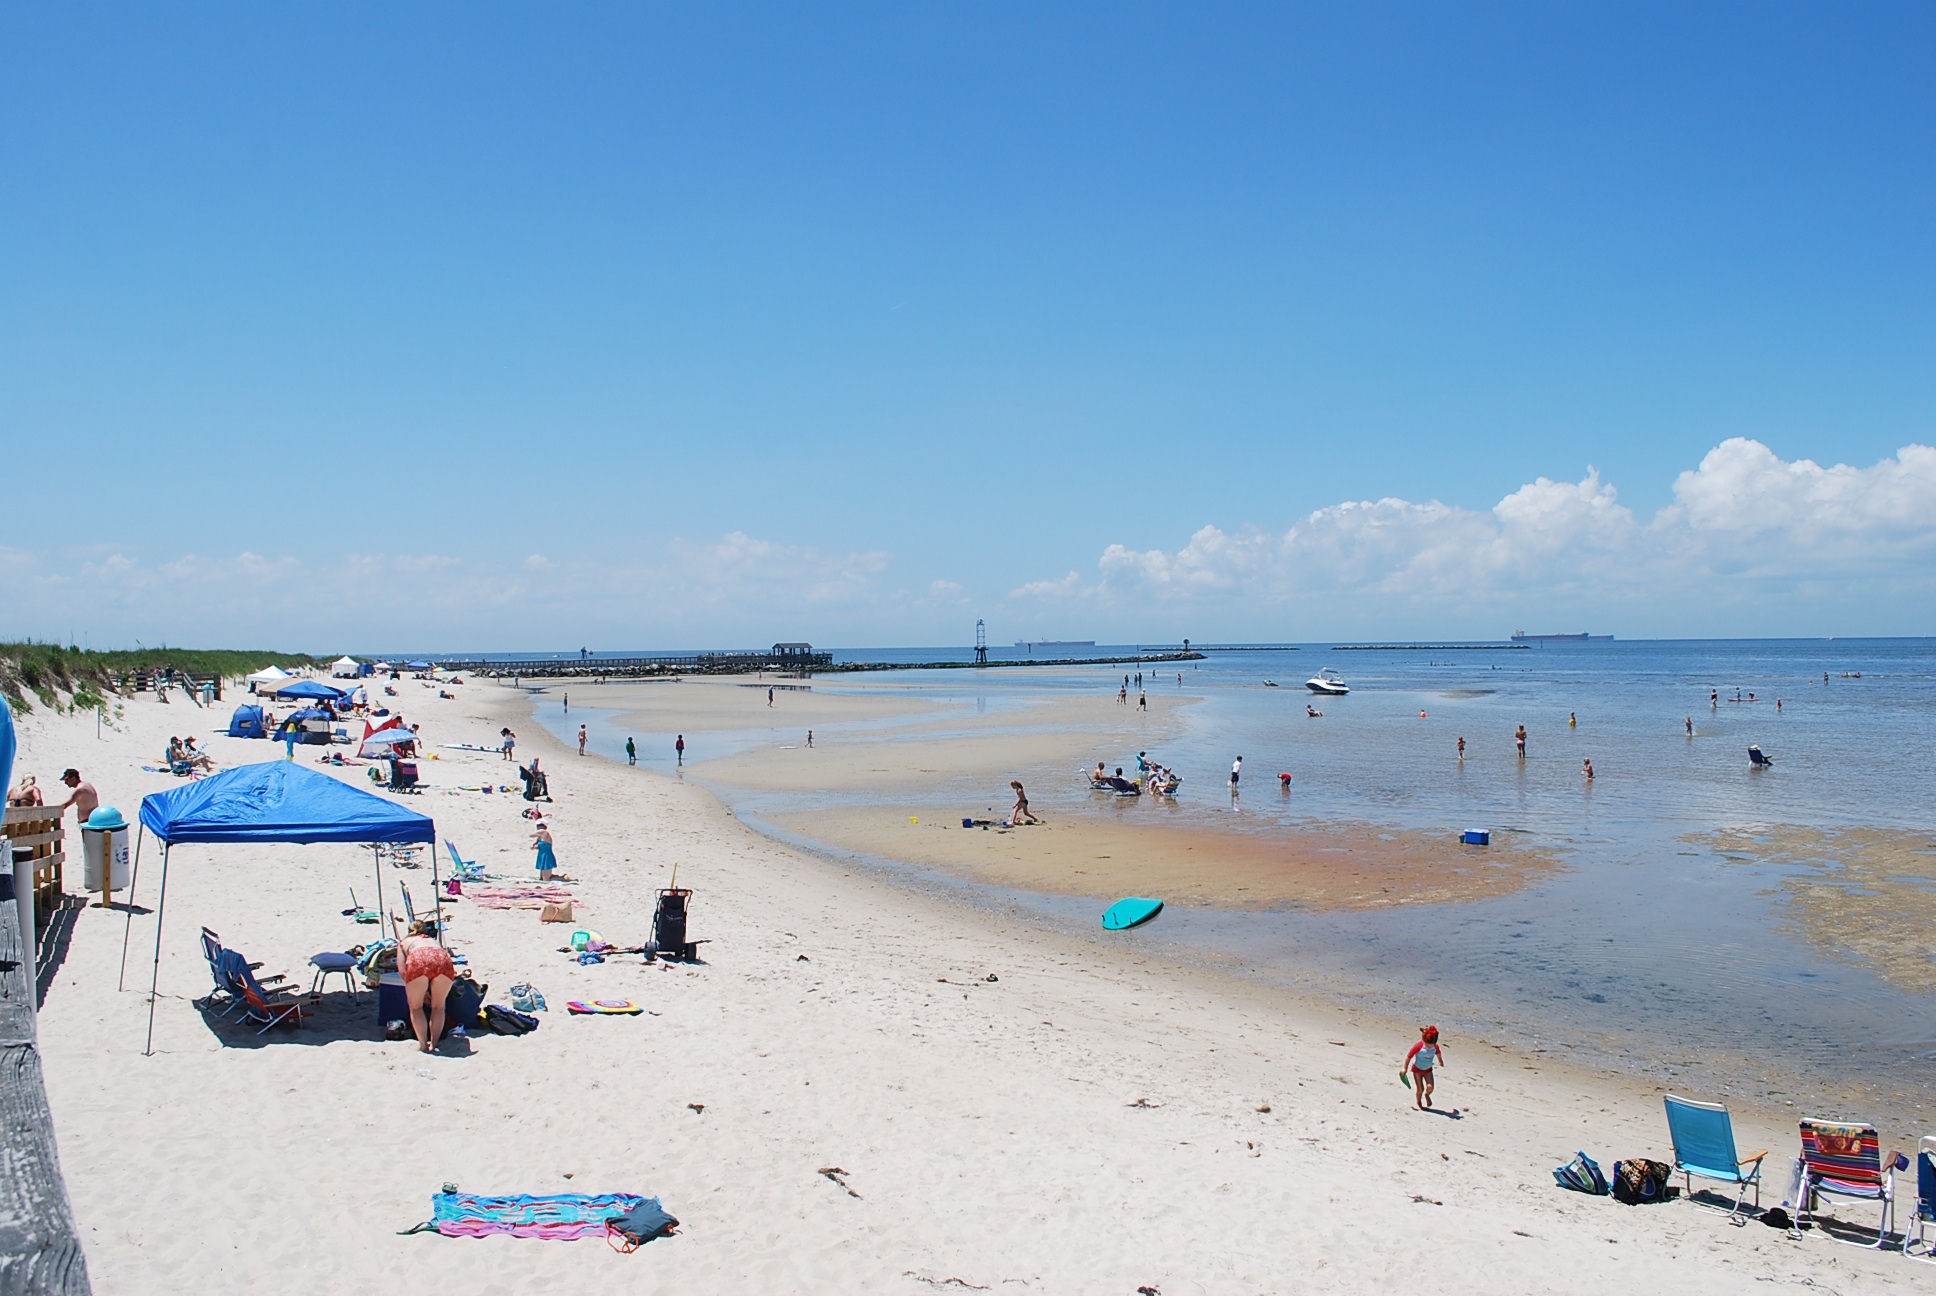 cape charles Choose from 13 cape charles hotels with huge savings cape charles is known for its beaches and cafés don't miss out on great hotels near bay creek golf club and cape charles beach.